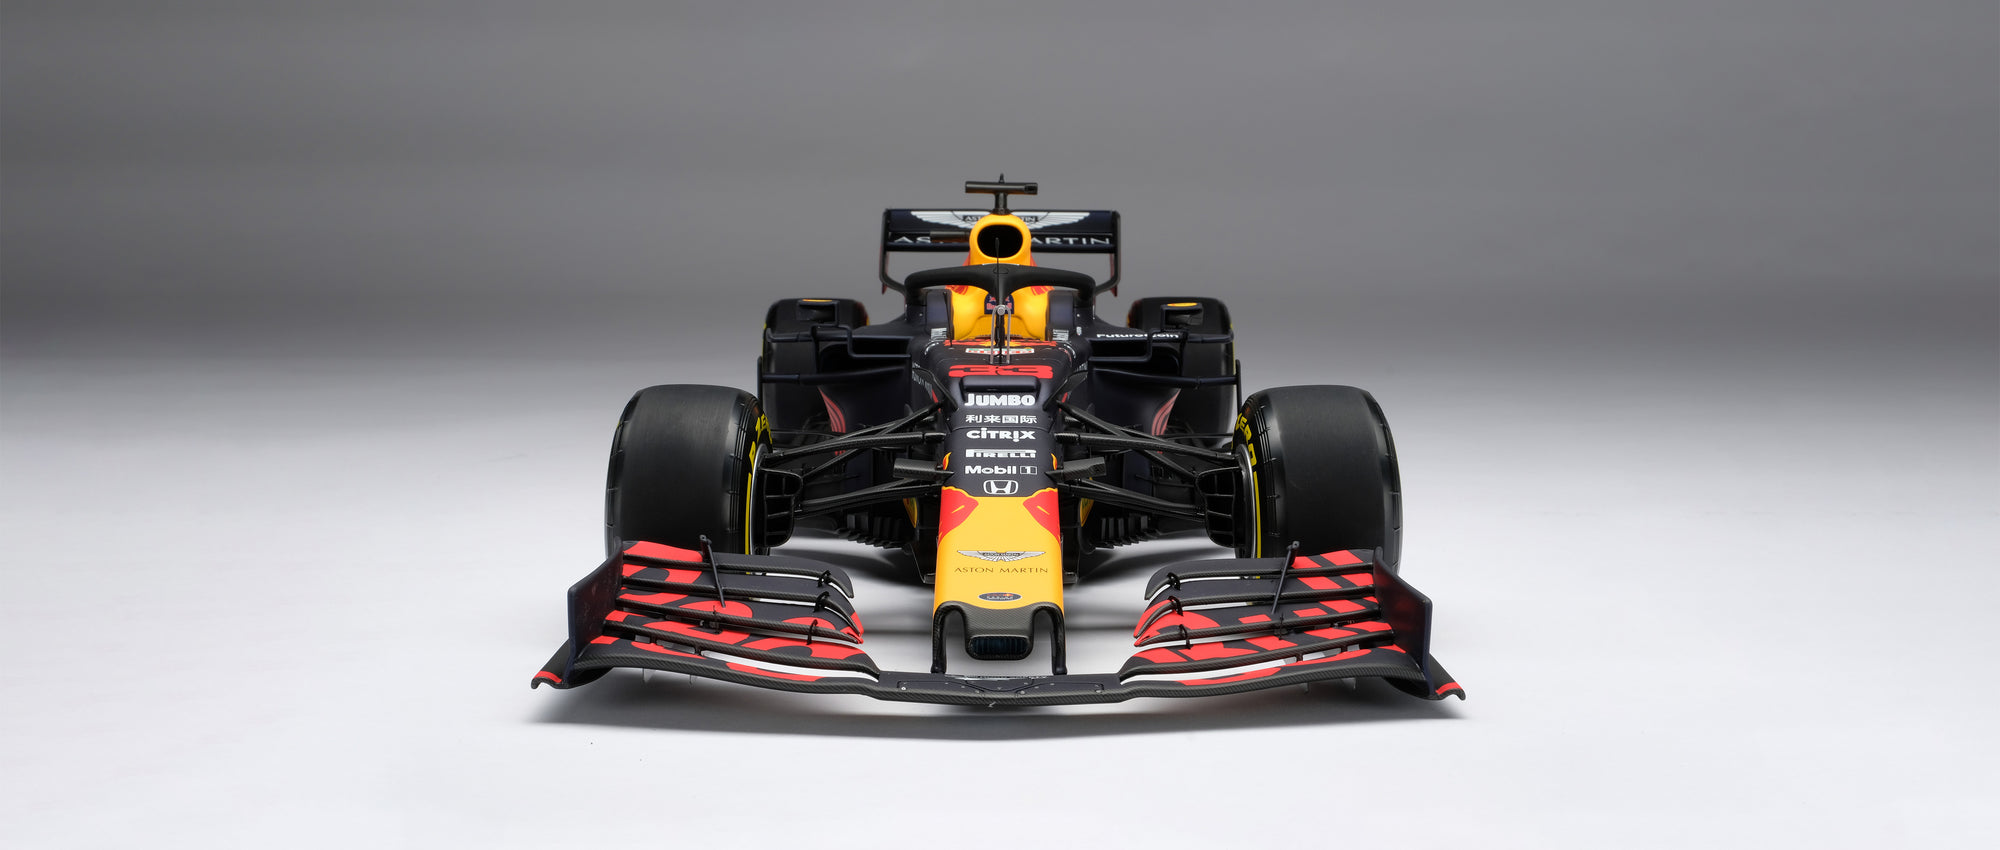 Aston Martin Red Bull Racing RB15 1:8 scale model